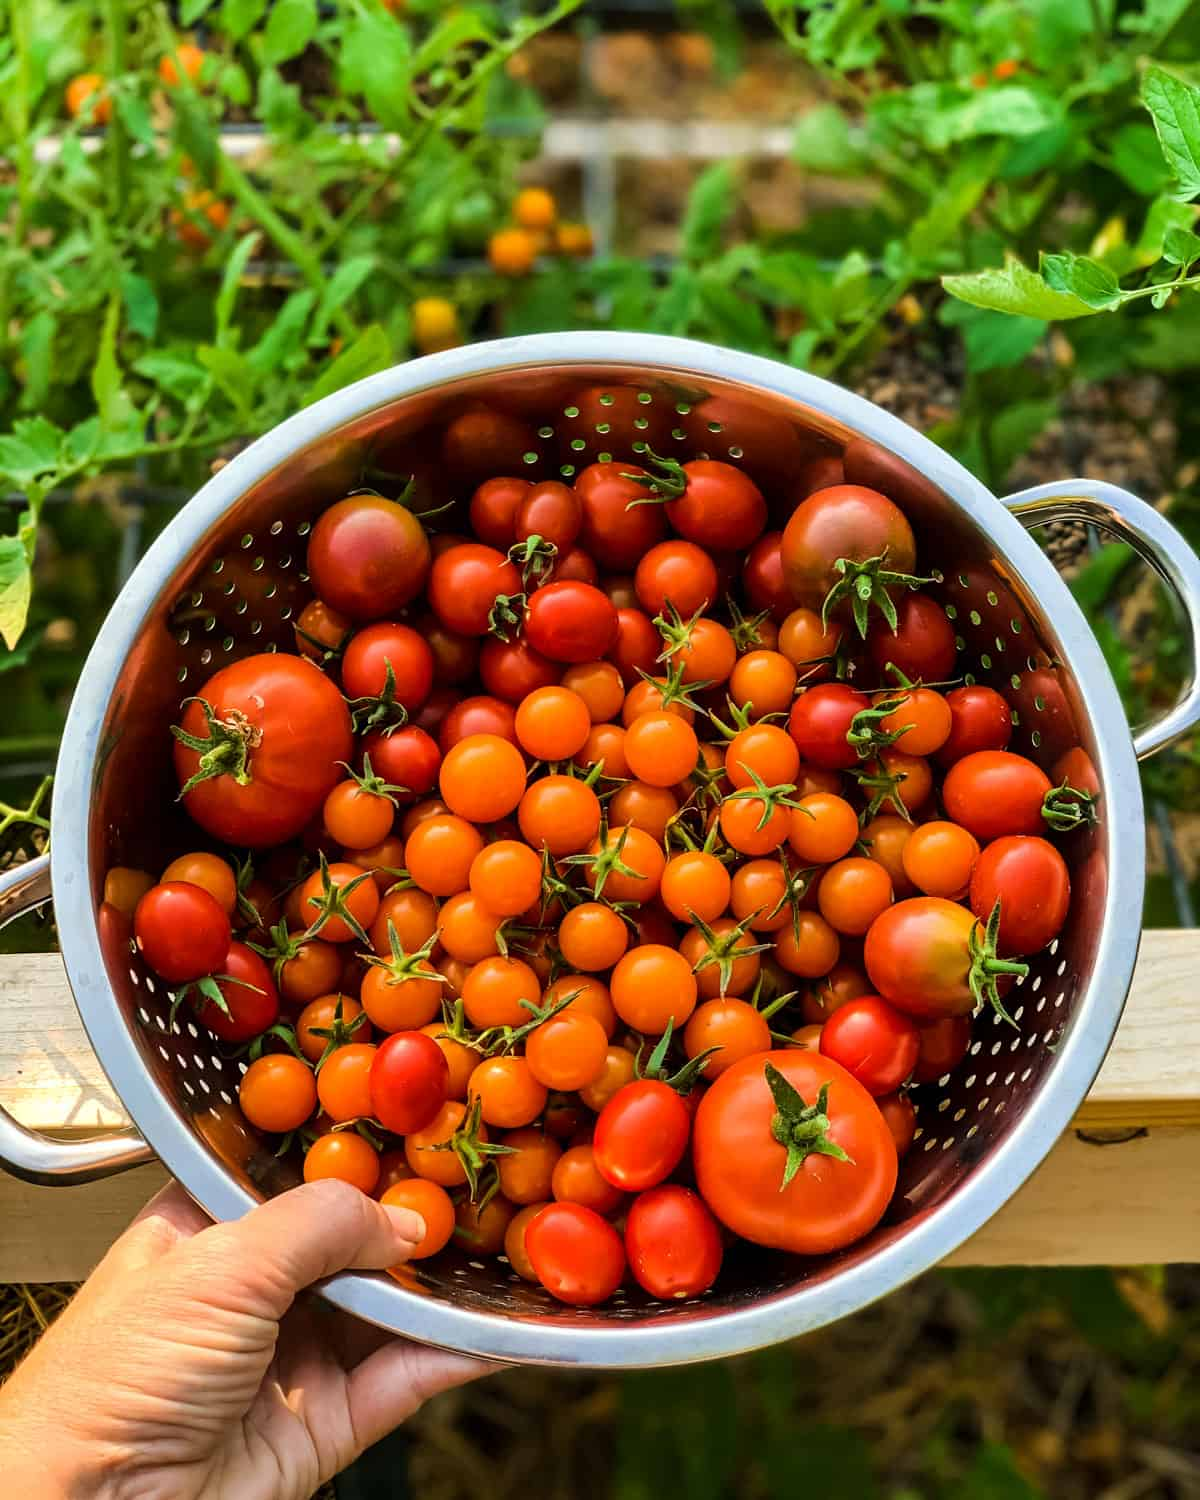 a hand holding a colander of freshly picked cherry tomatoes